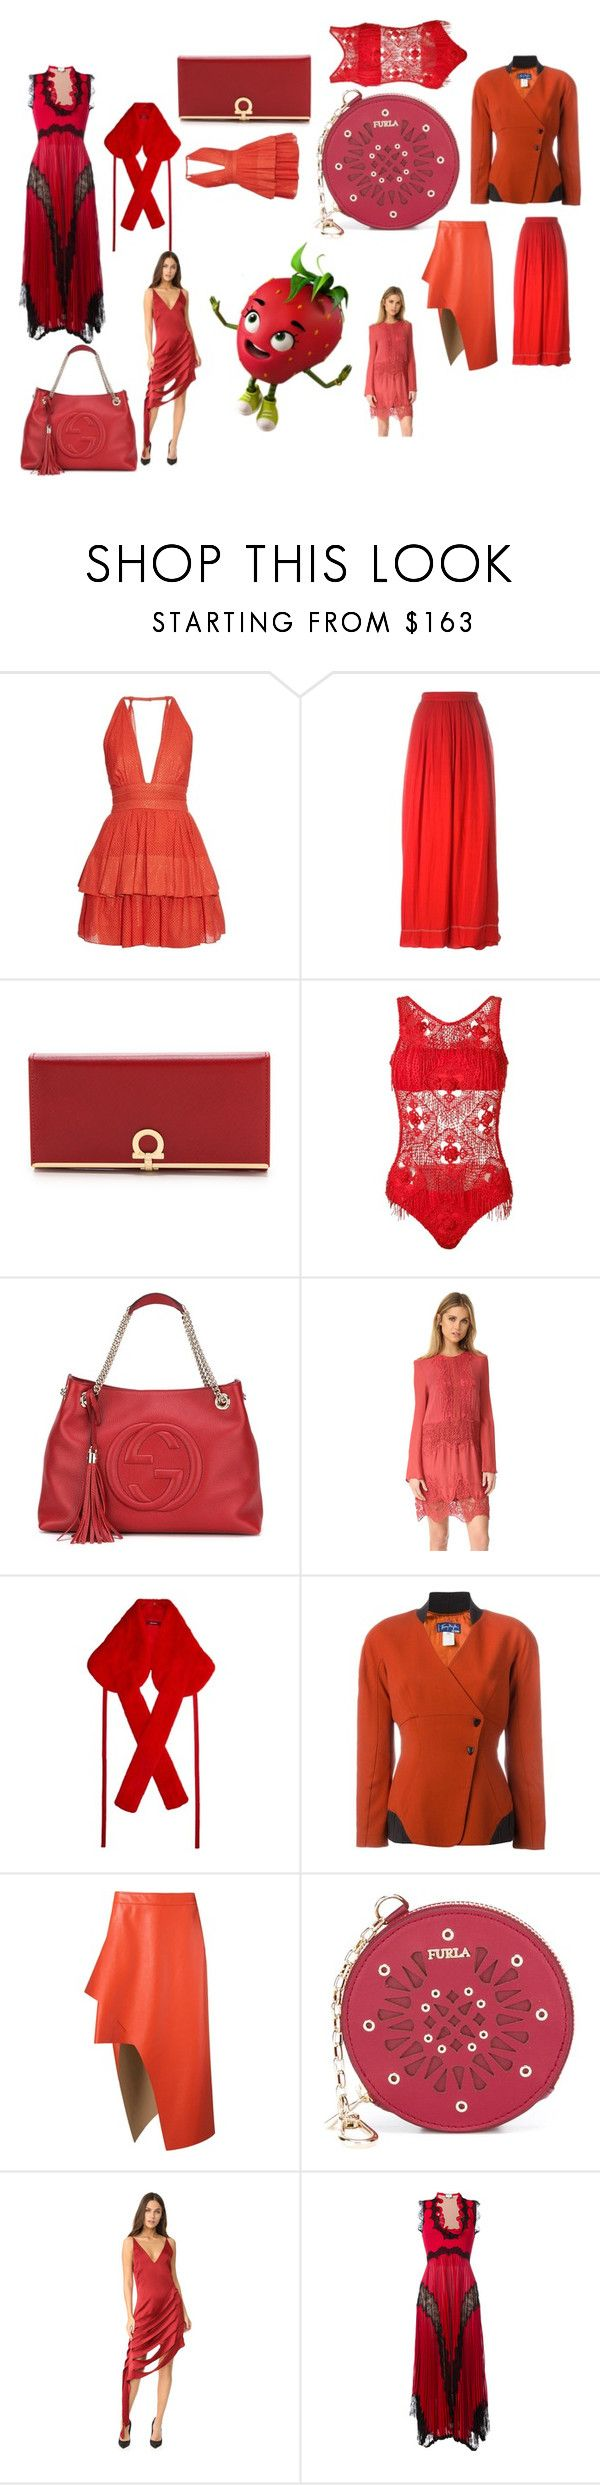 """""""old wine in red bottle¶"""" by racheal-taylor ❤ liked on Polyvore featuring Sophie Theallet, Isabel Marant, Salvatore Ferragamo, Amir Slama, Gucci, The Jetset Diaries, Sies Marjan, Thierry Mugler, Uma   Raquel Davidowicz and Furla"""